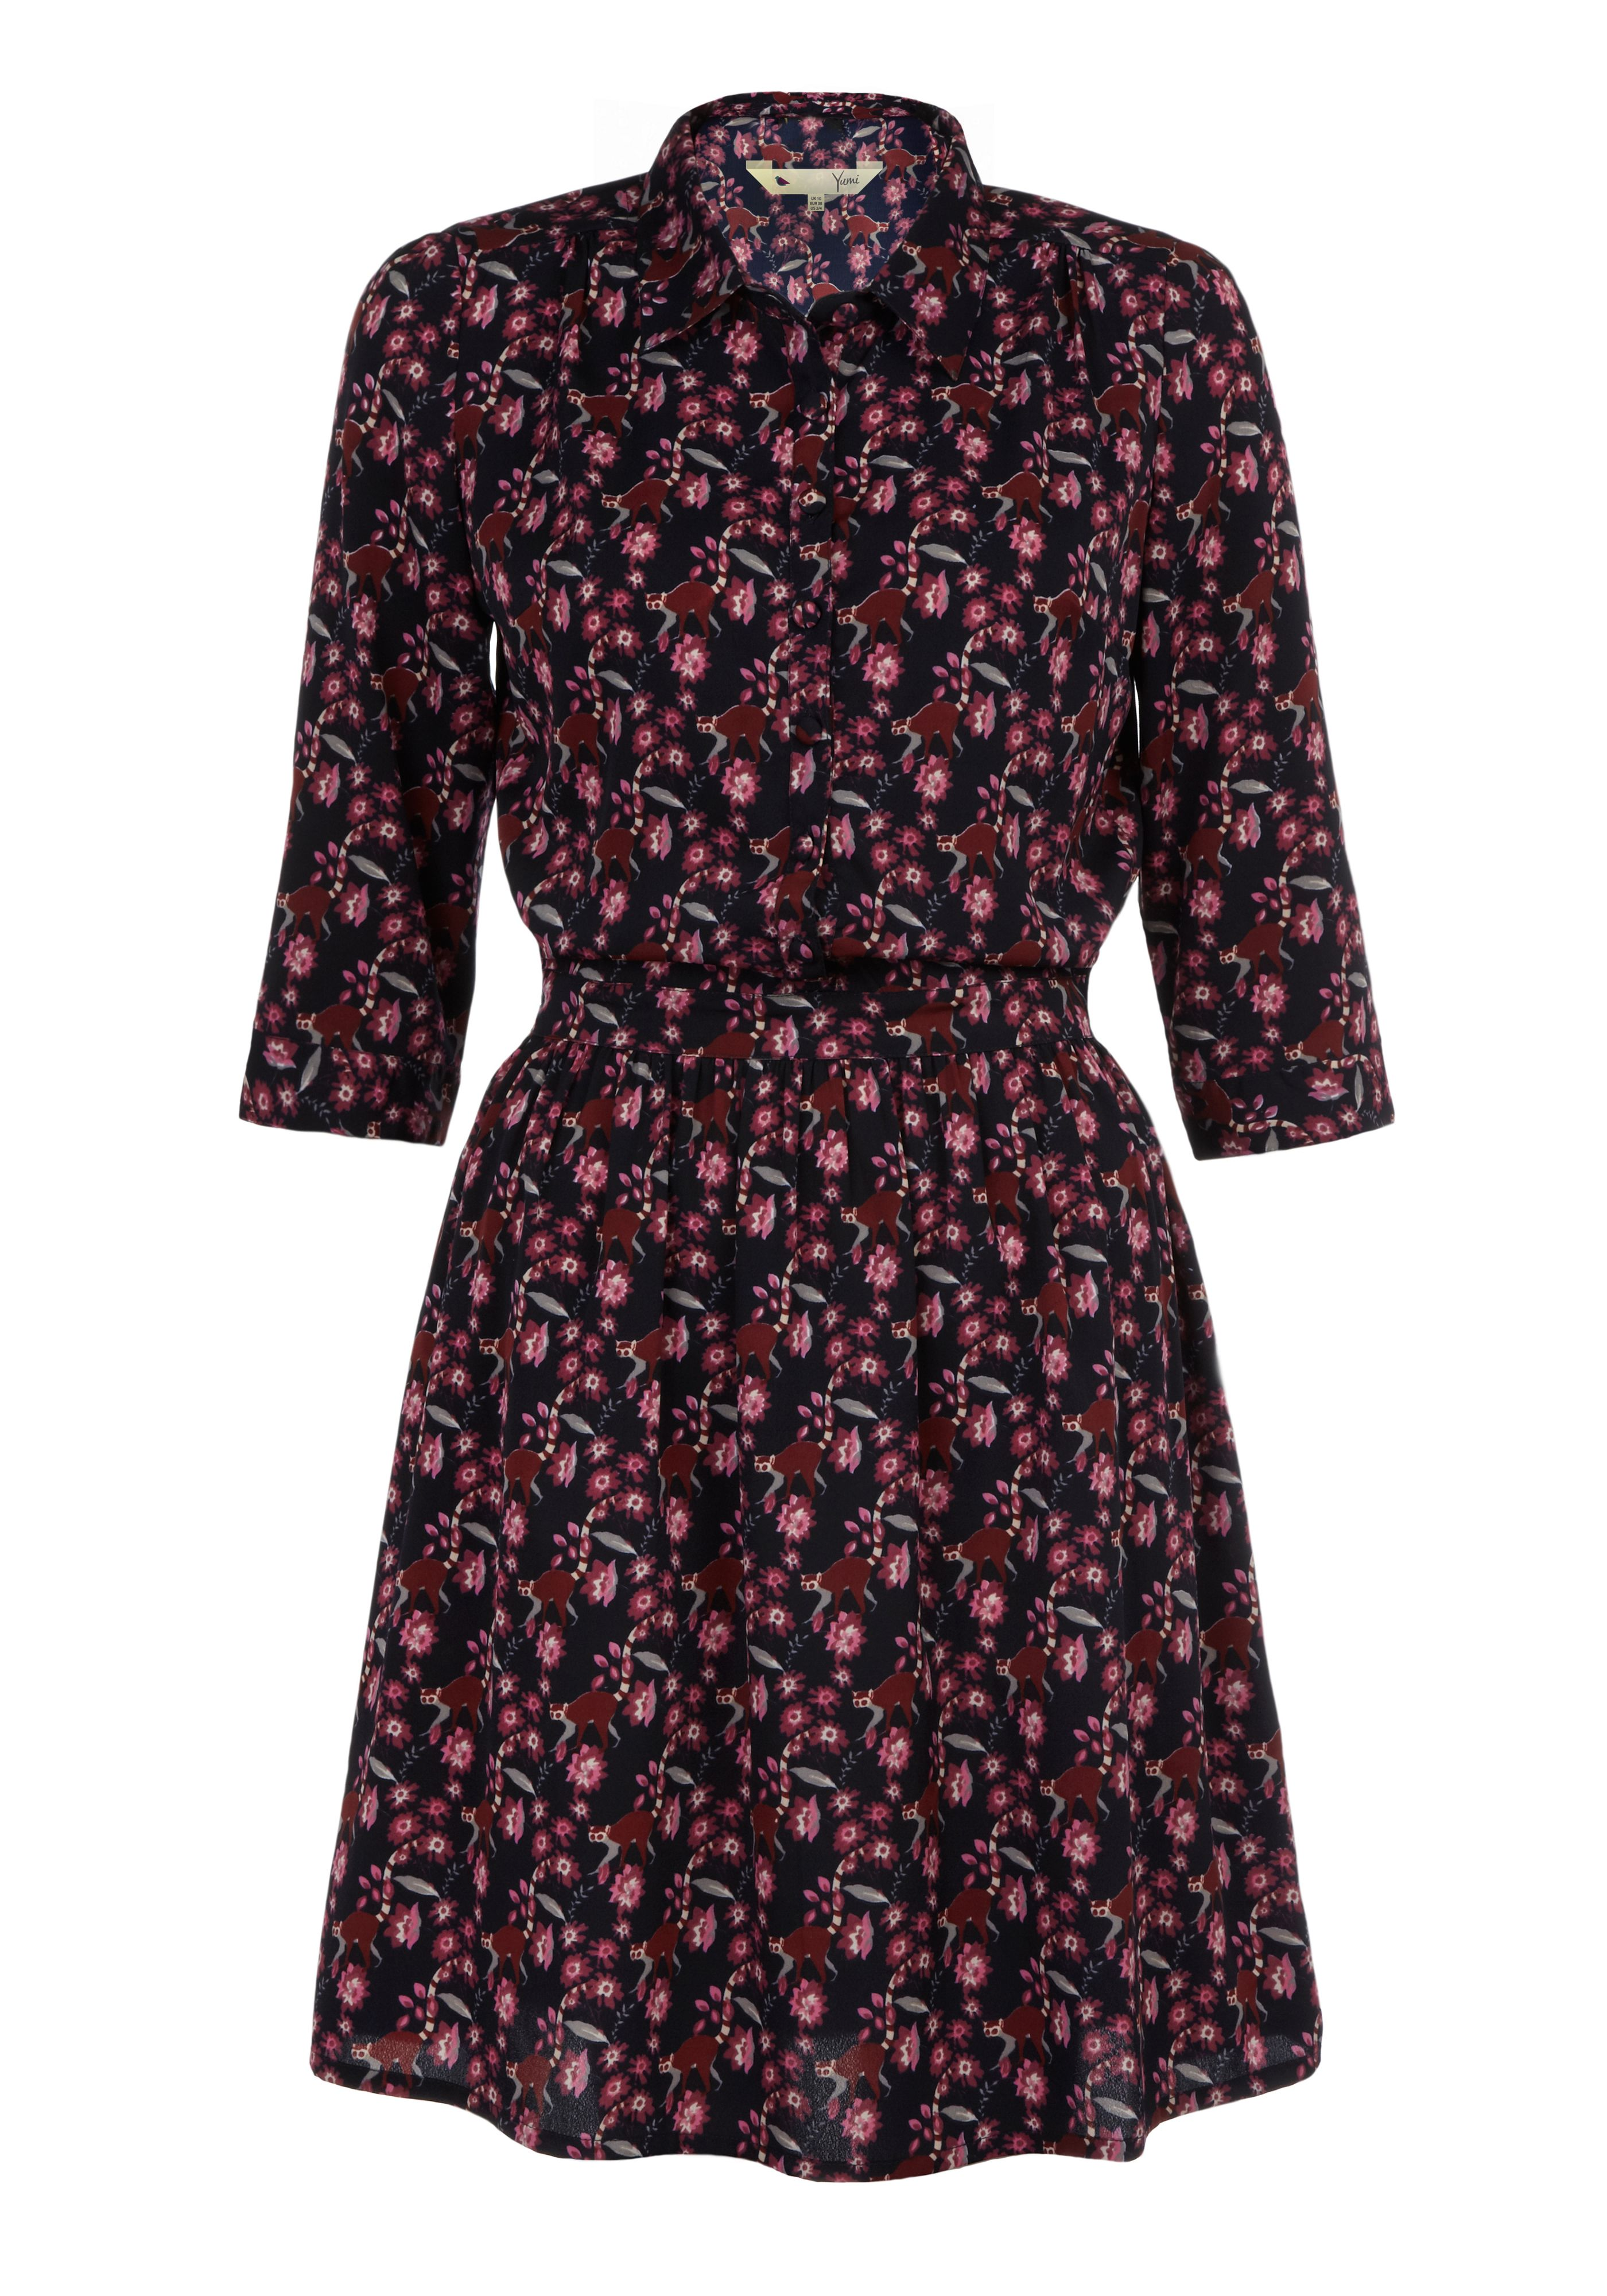 Lemur print shirt dress